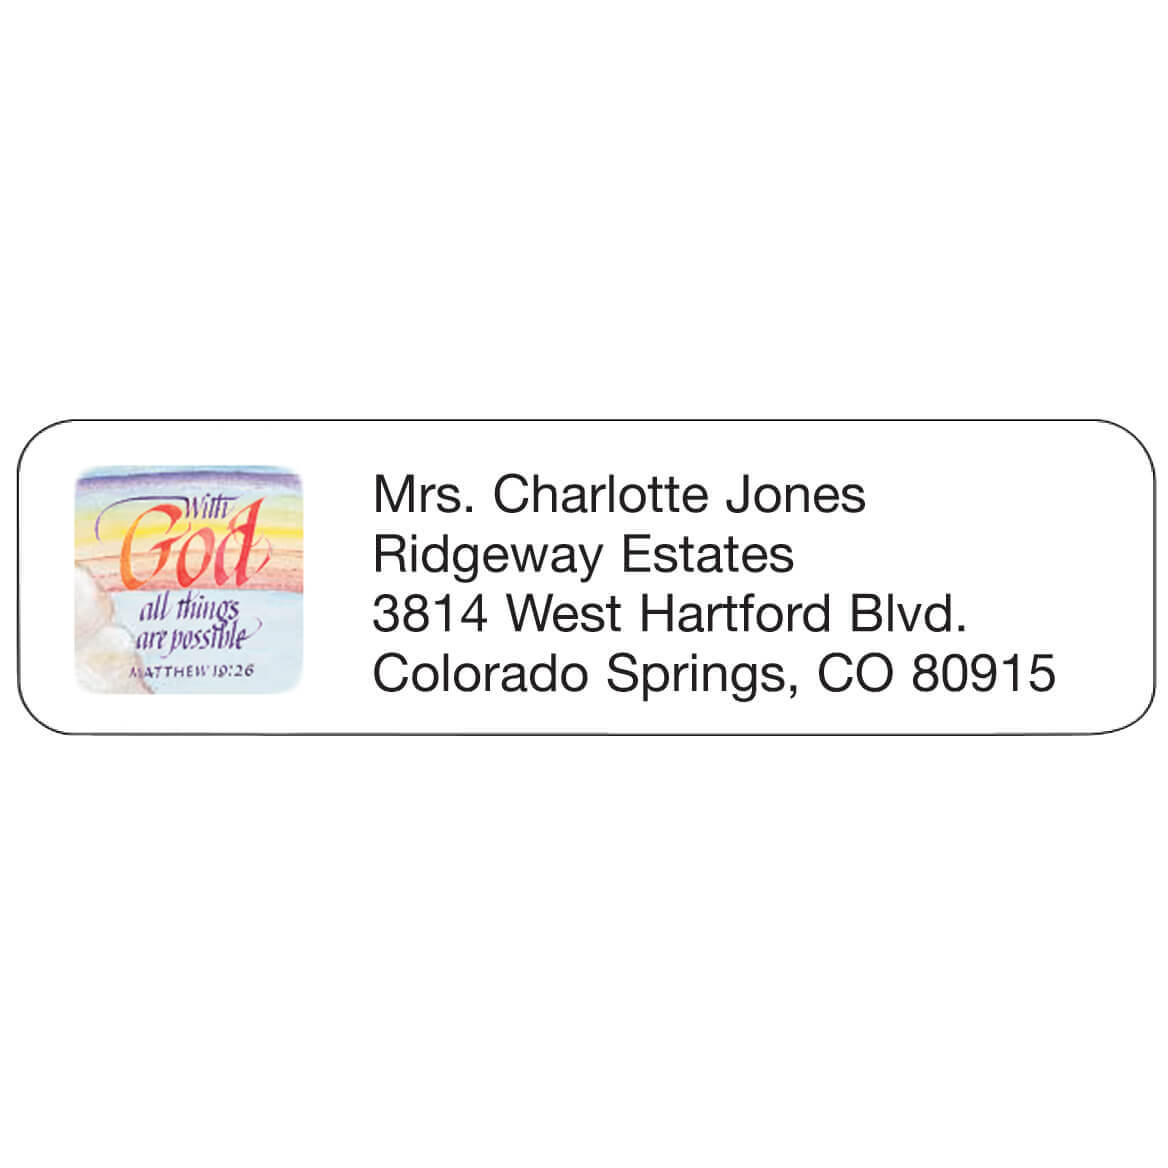 Religious Personalized Address Labels Delightfully designed self-stick white address labels are personalizedonalized in black. With these religious address labels, specify up to 4 lines, 26 letters and spaces per line. Set of 200 personalizedonalized address labels; 2  x 5/8  each.